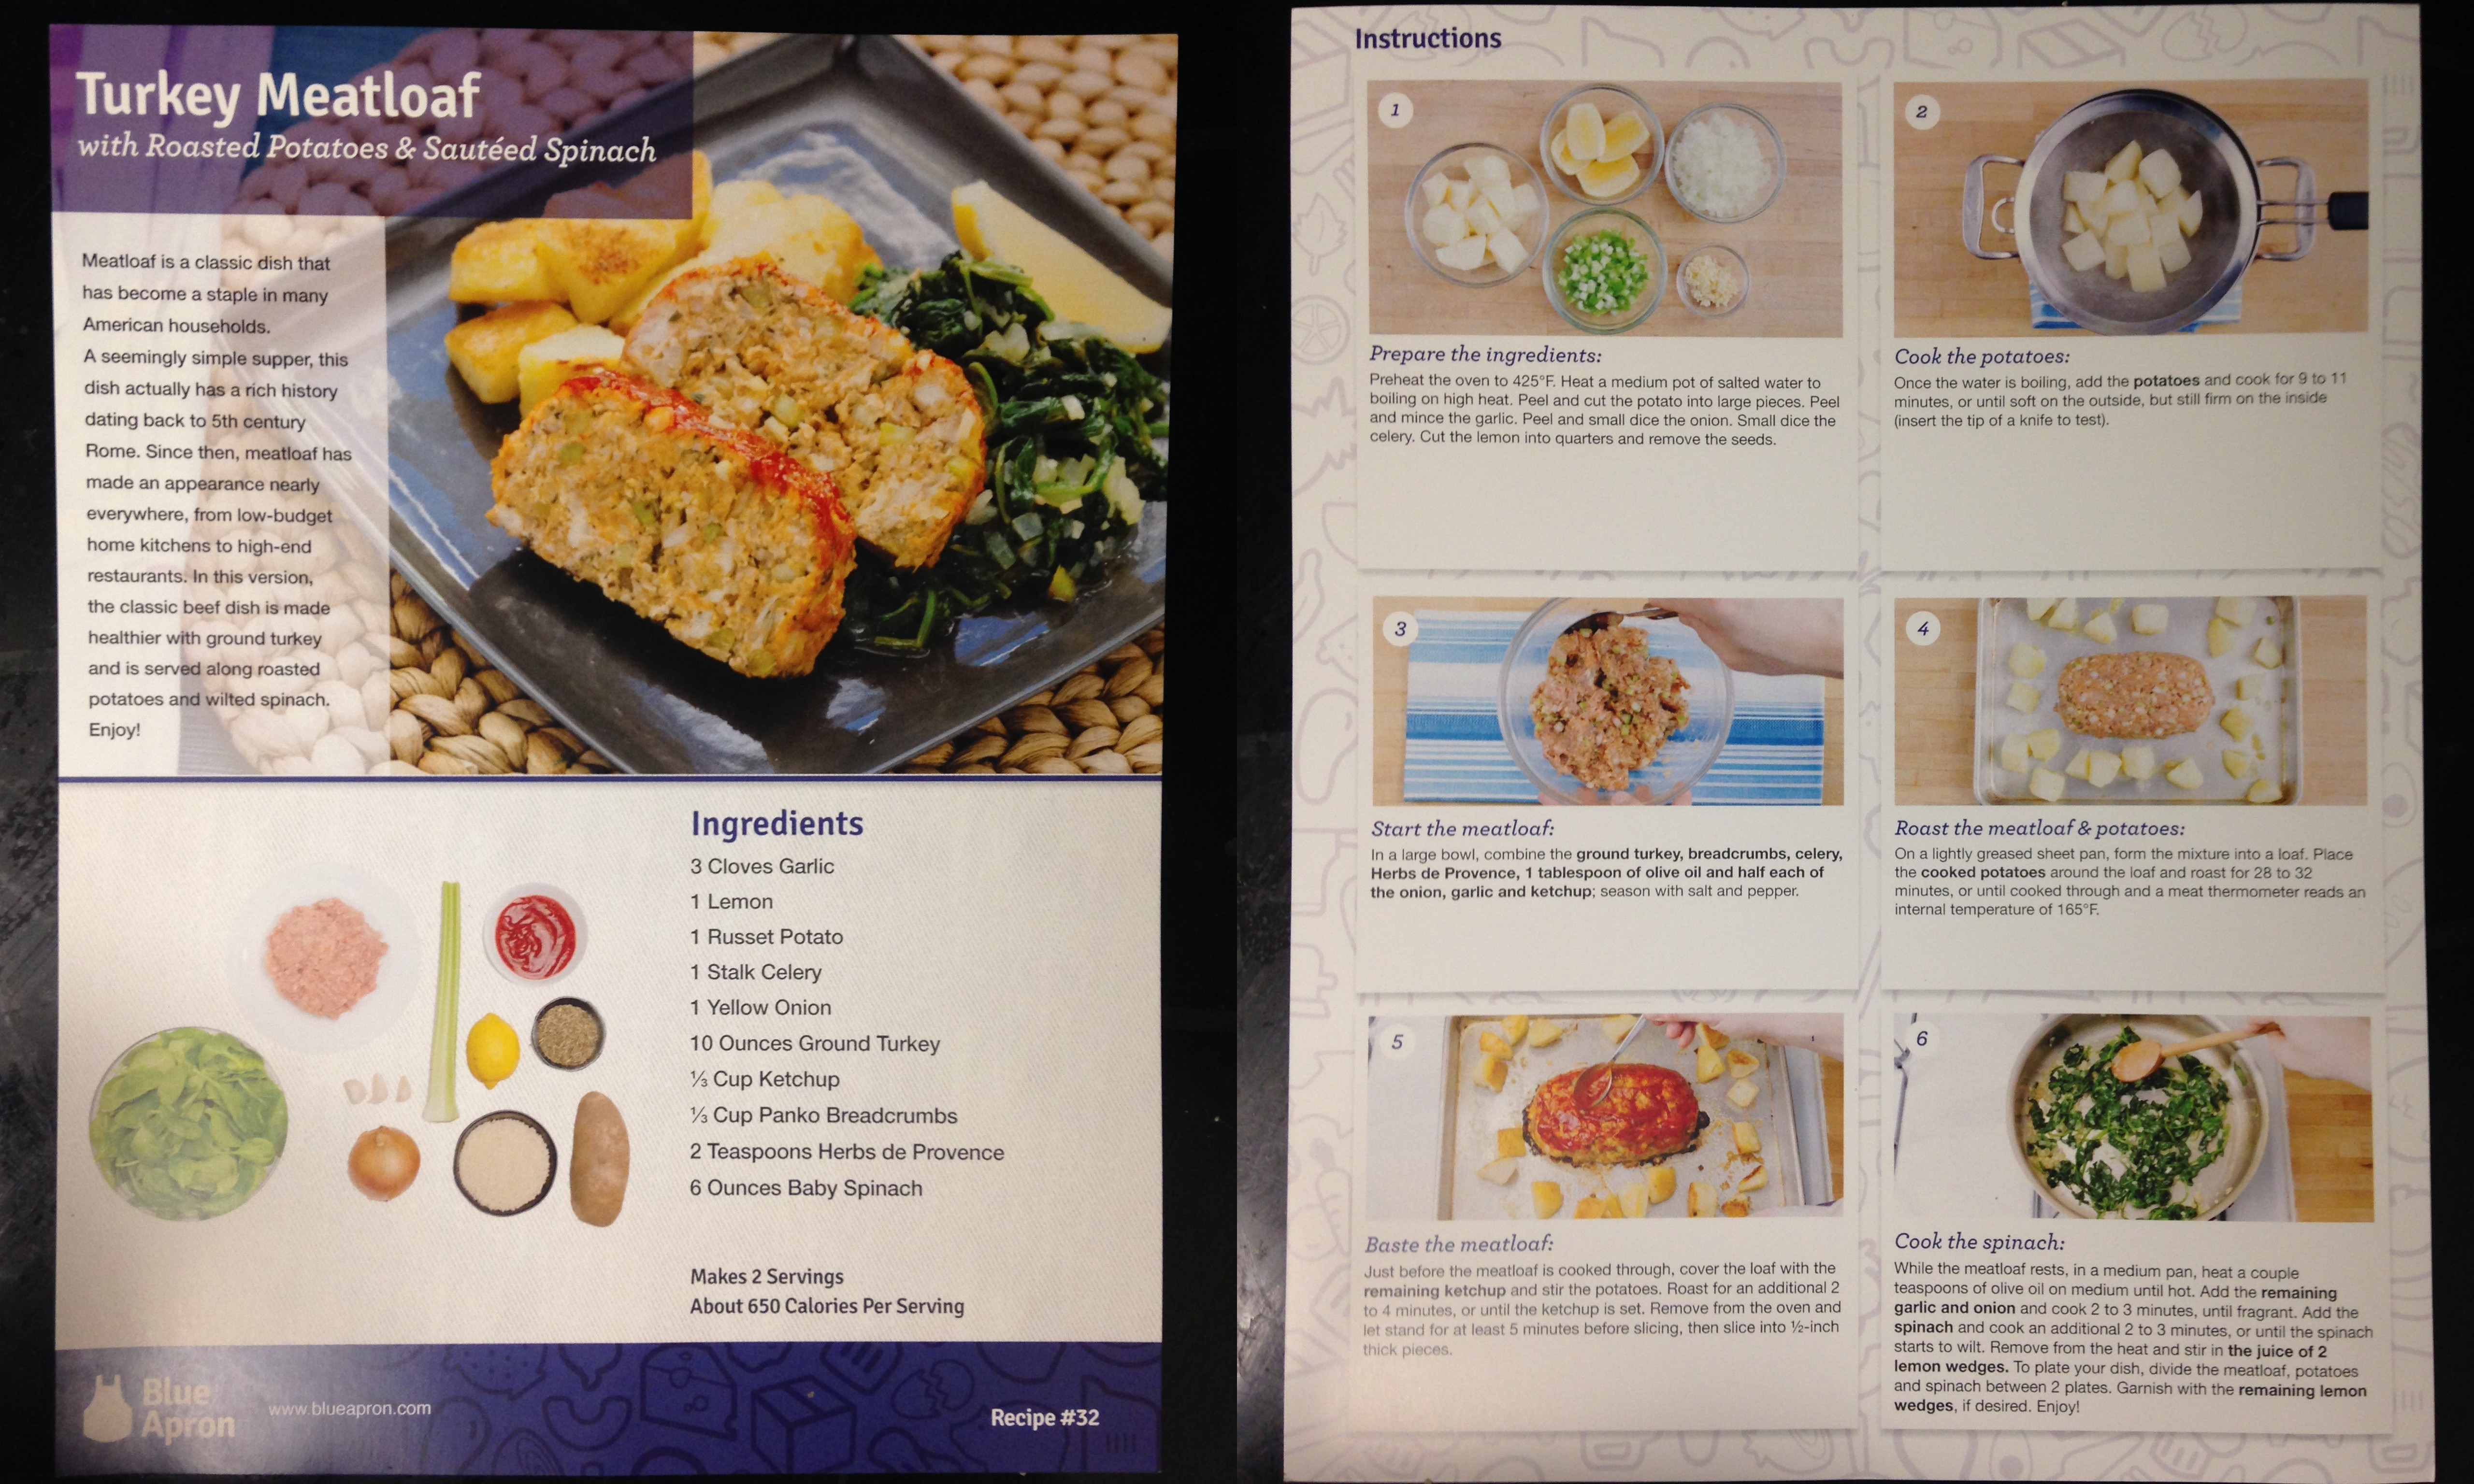 Blue apron olive oil - Collage Of Blue Apron Turkey Meatloaf With Roasted Potatoes And Sauteed Spinach Recipe Card